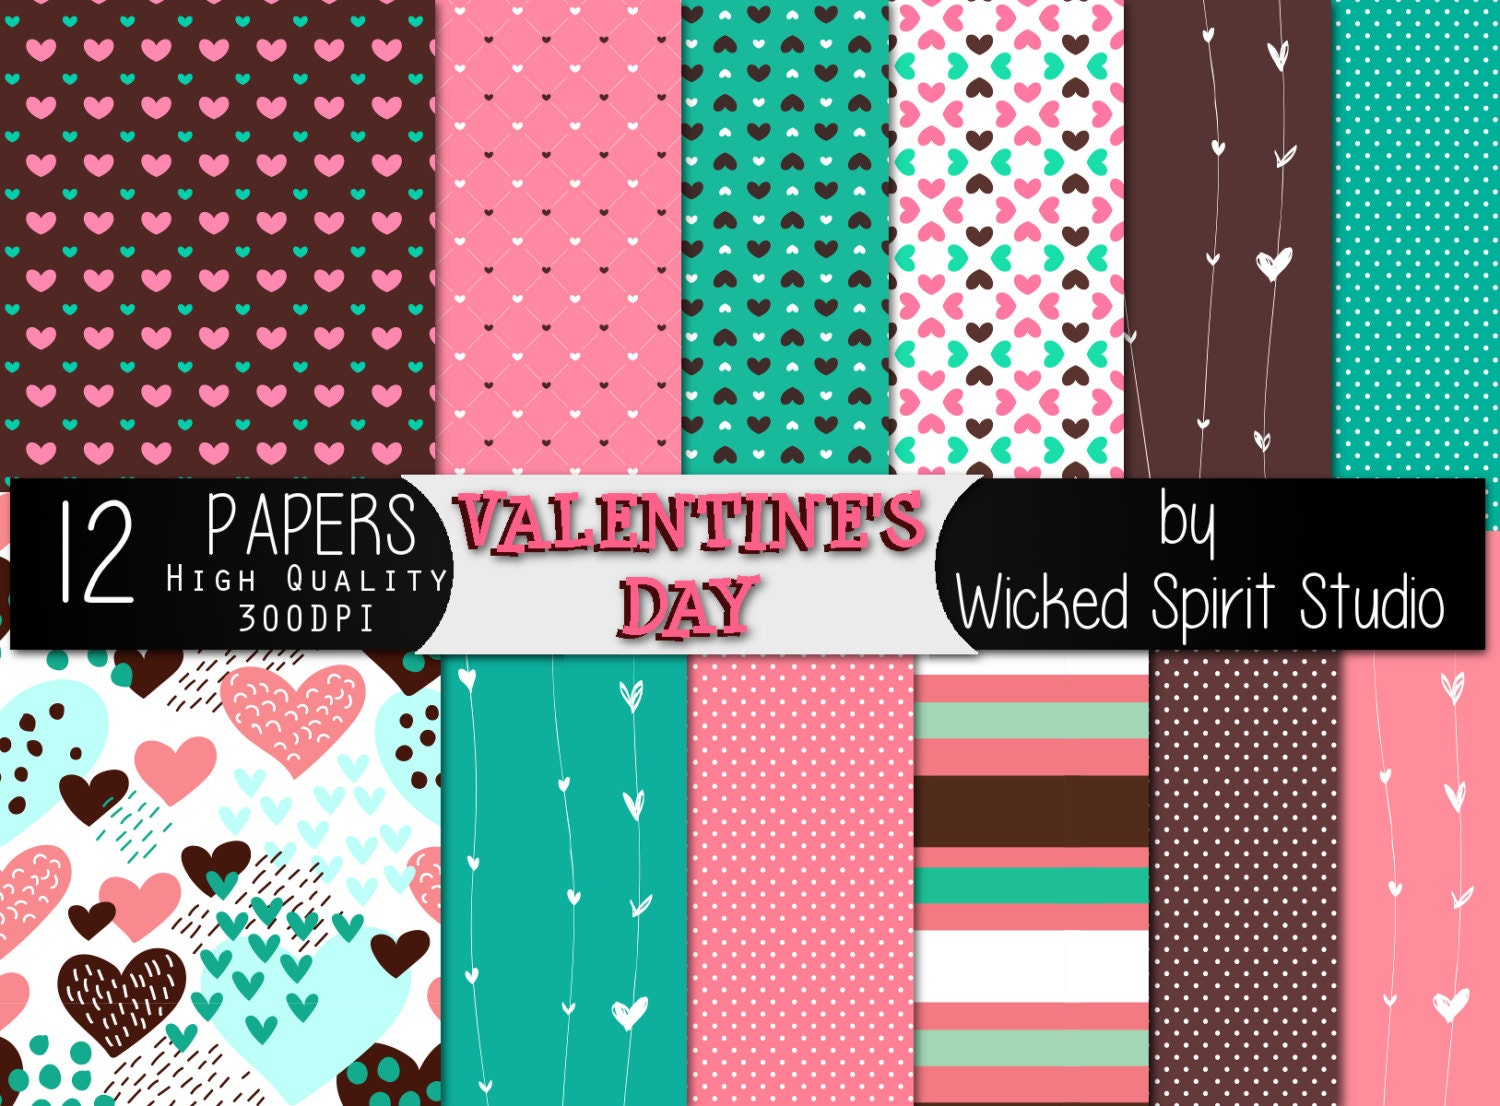 How to make scrapbook paper designs - This Is A Digital File